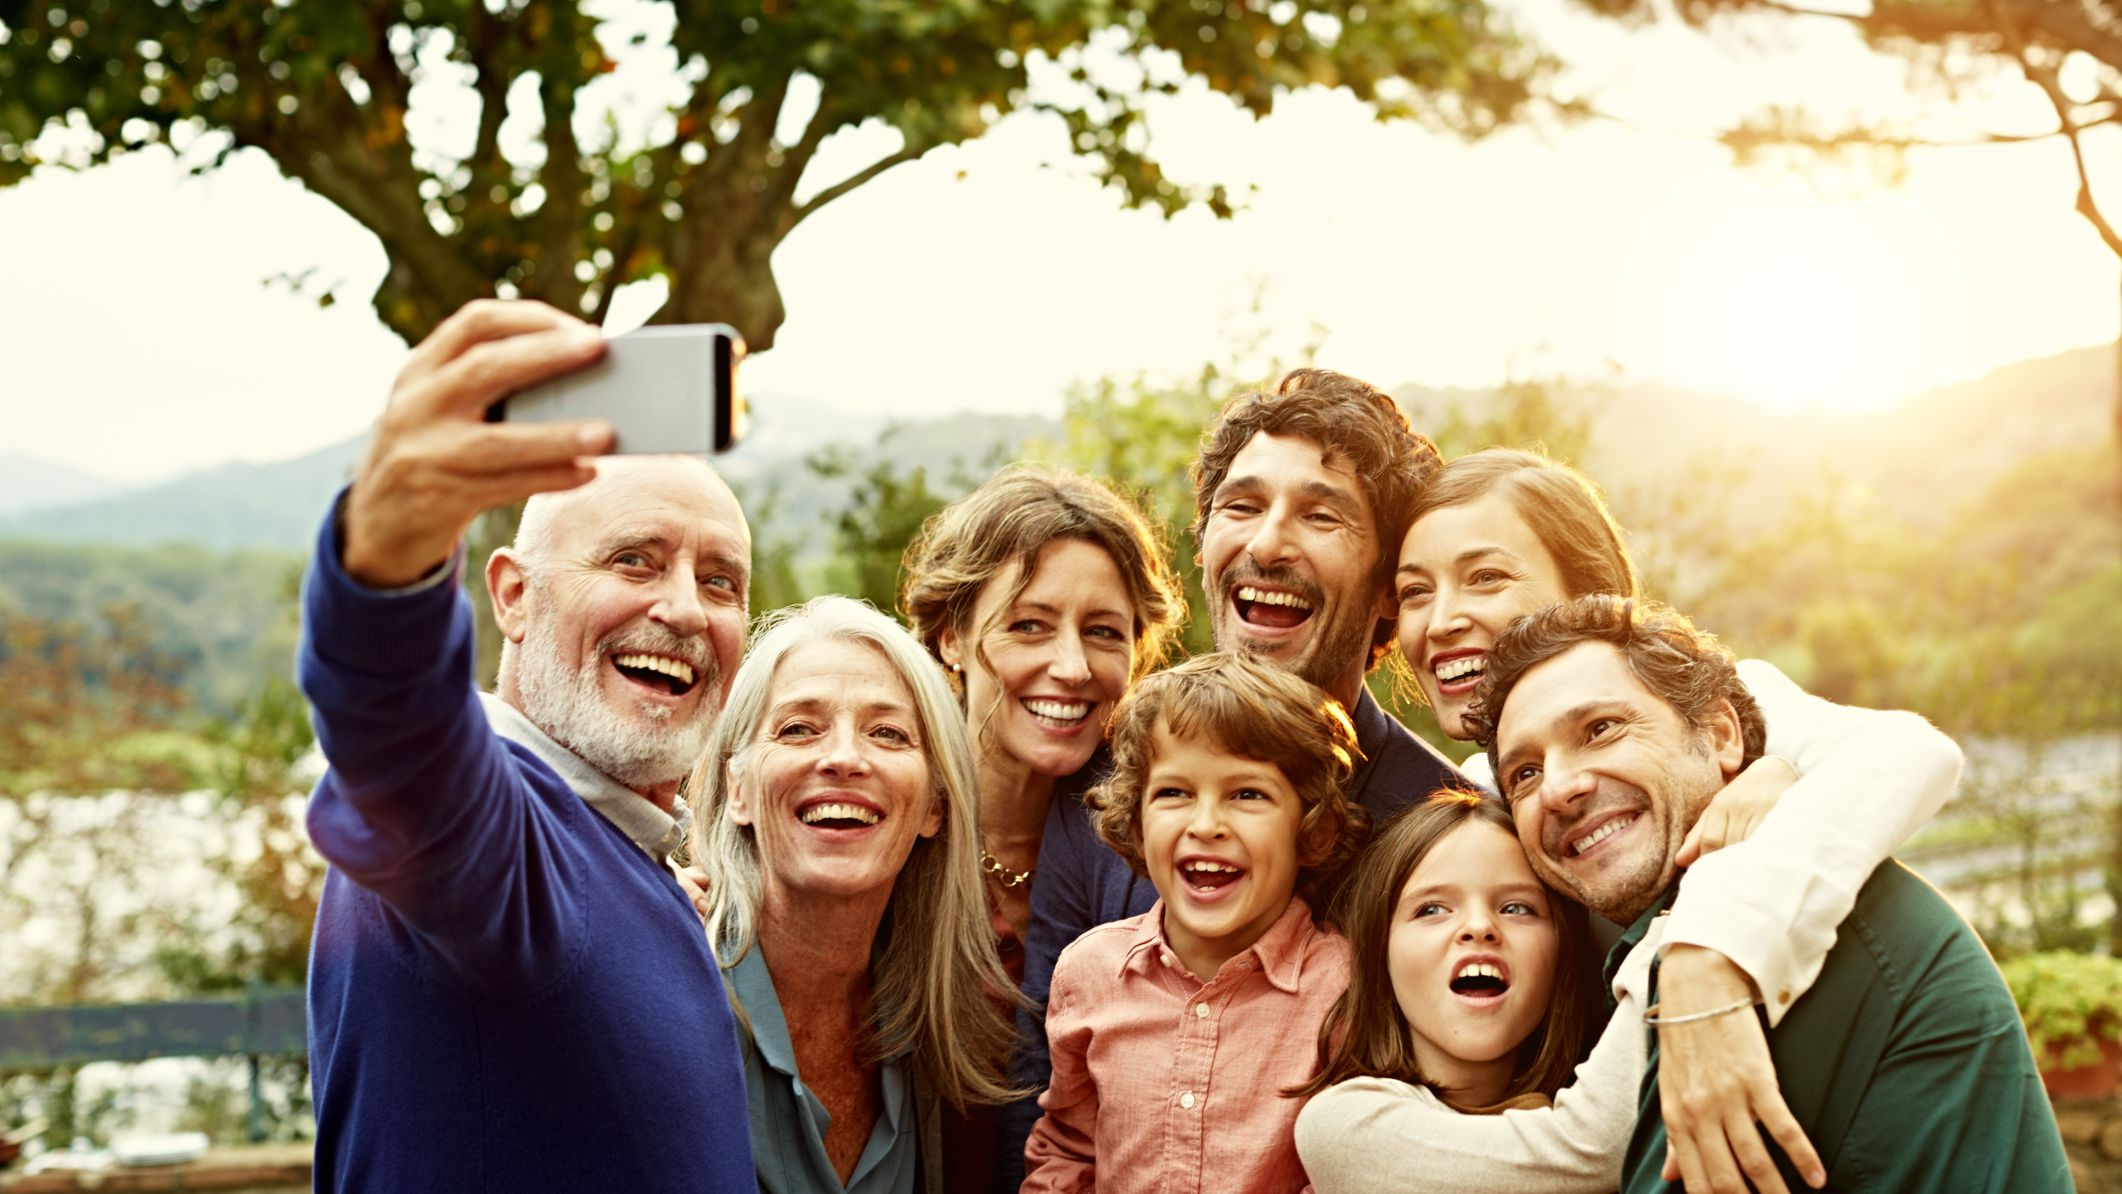 Having Healthy Family Relationships With Less Stress